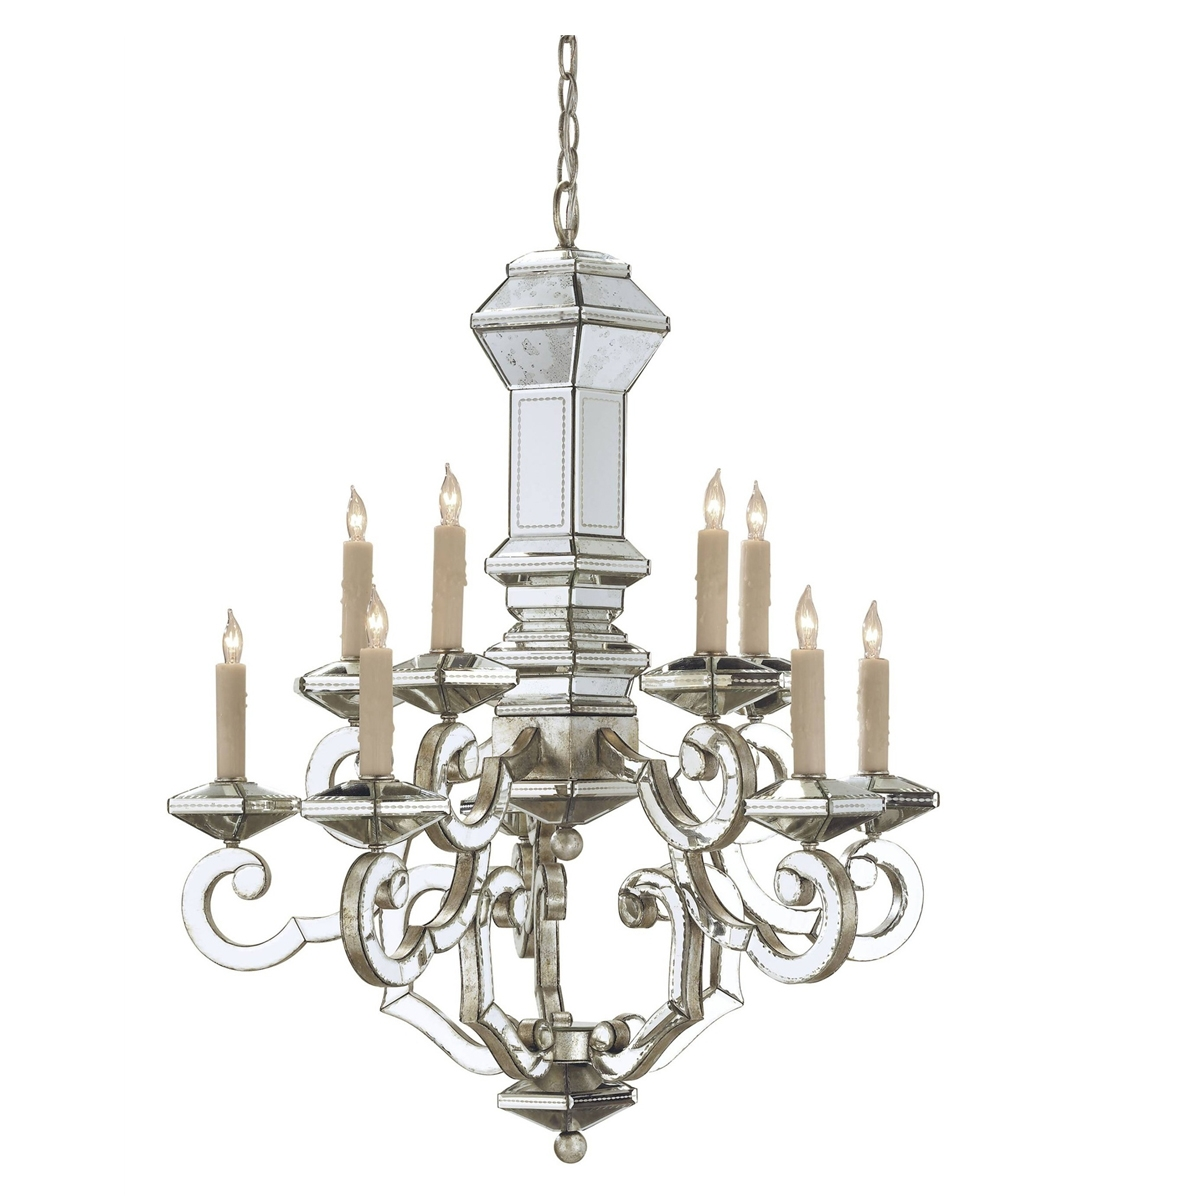 Mirrored Venetian Chandelier Belle Escape Pertaining To Antique Mirror Chandelier (Image 8 of 15)